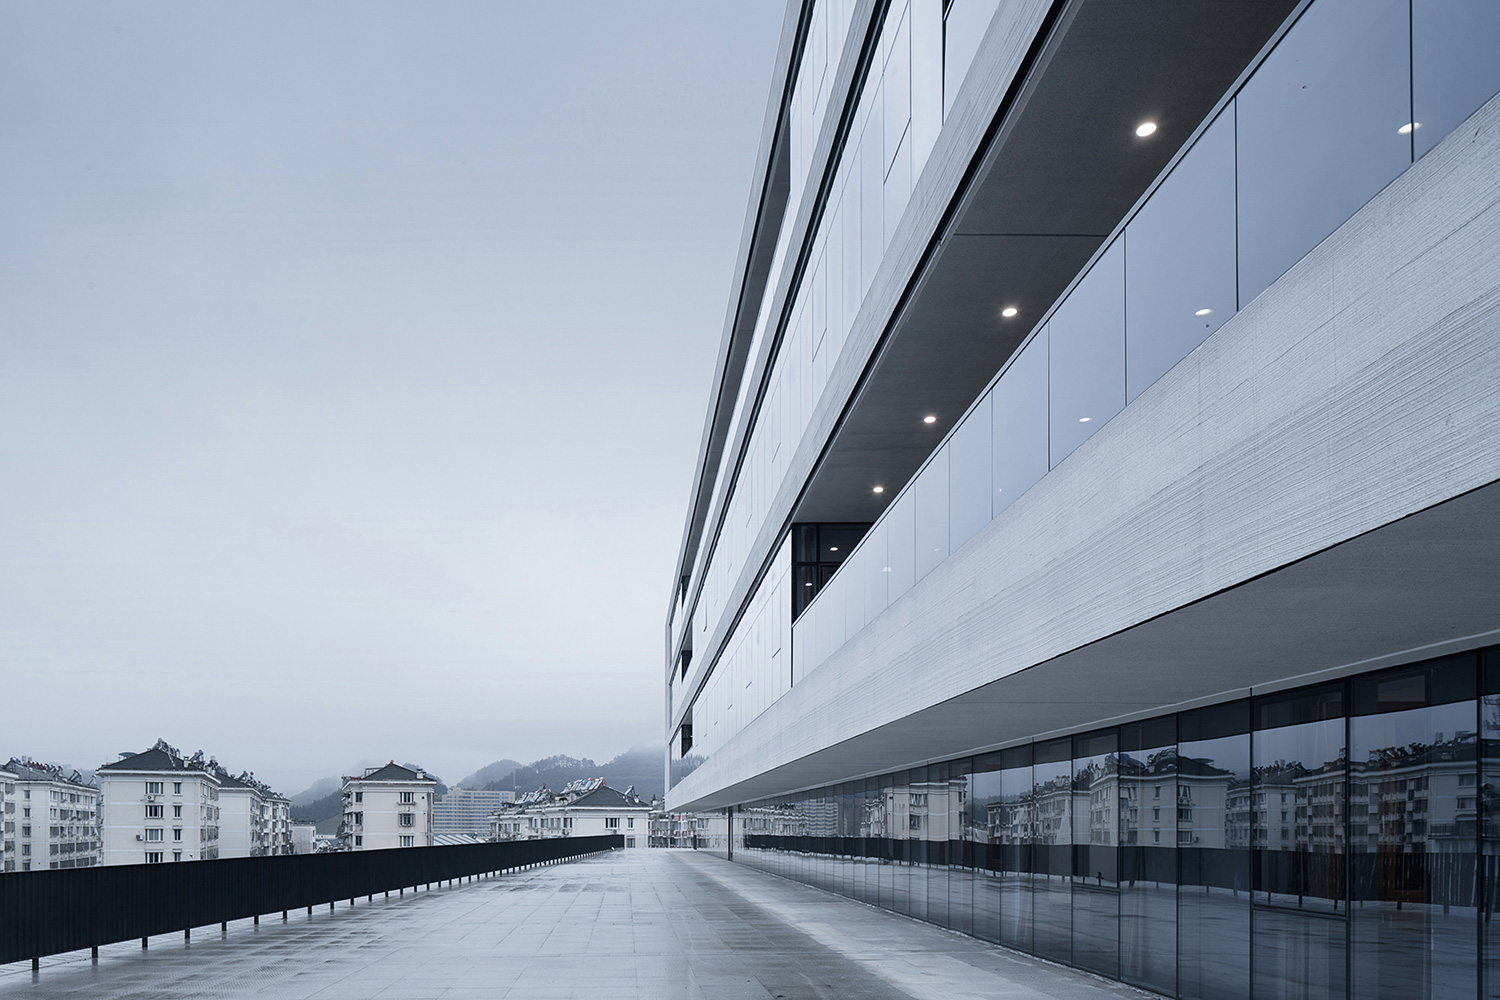 Relationship between the building and the environment on the 3rd floor ©Zhao Qiang